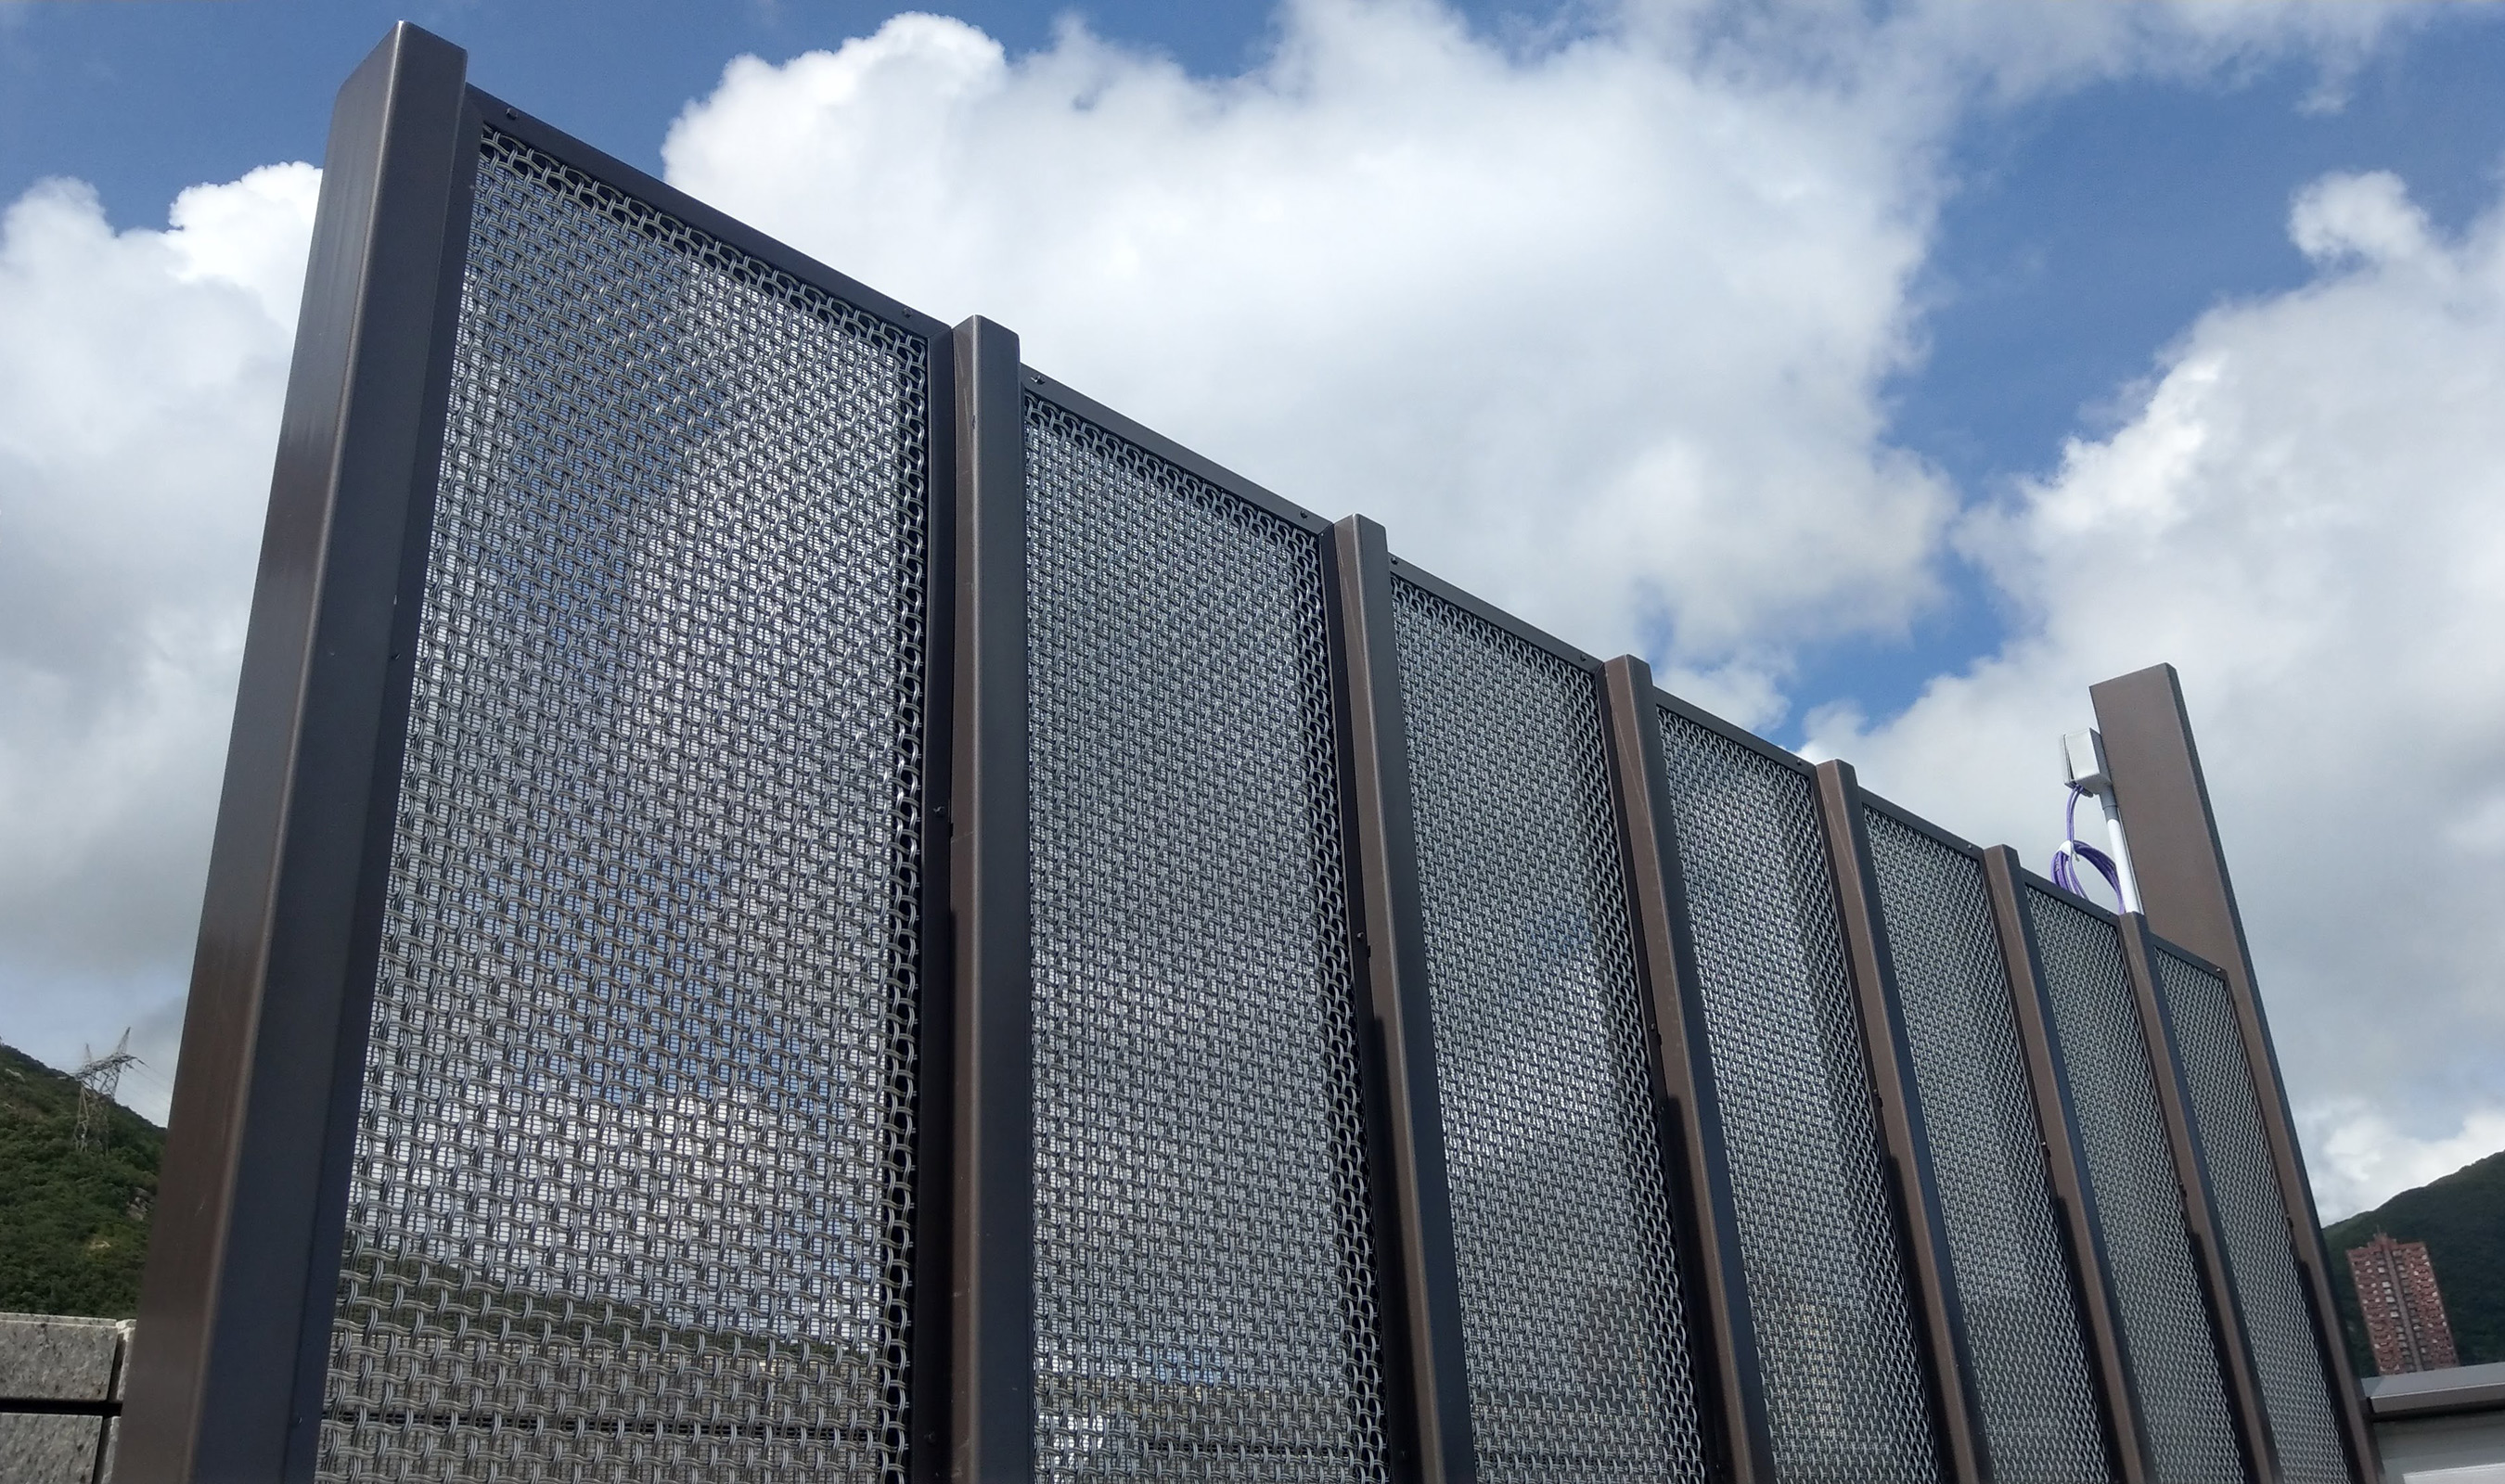 The open-air rooftop as accented with woven wire mesh paneled privacy screens,